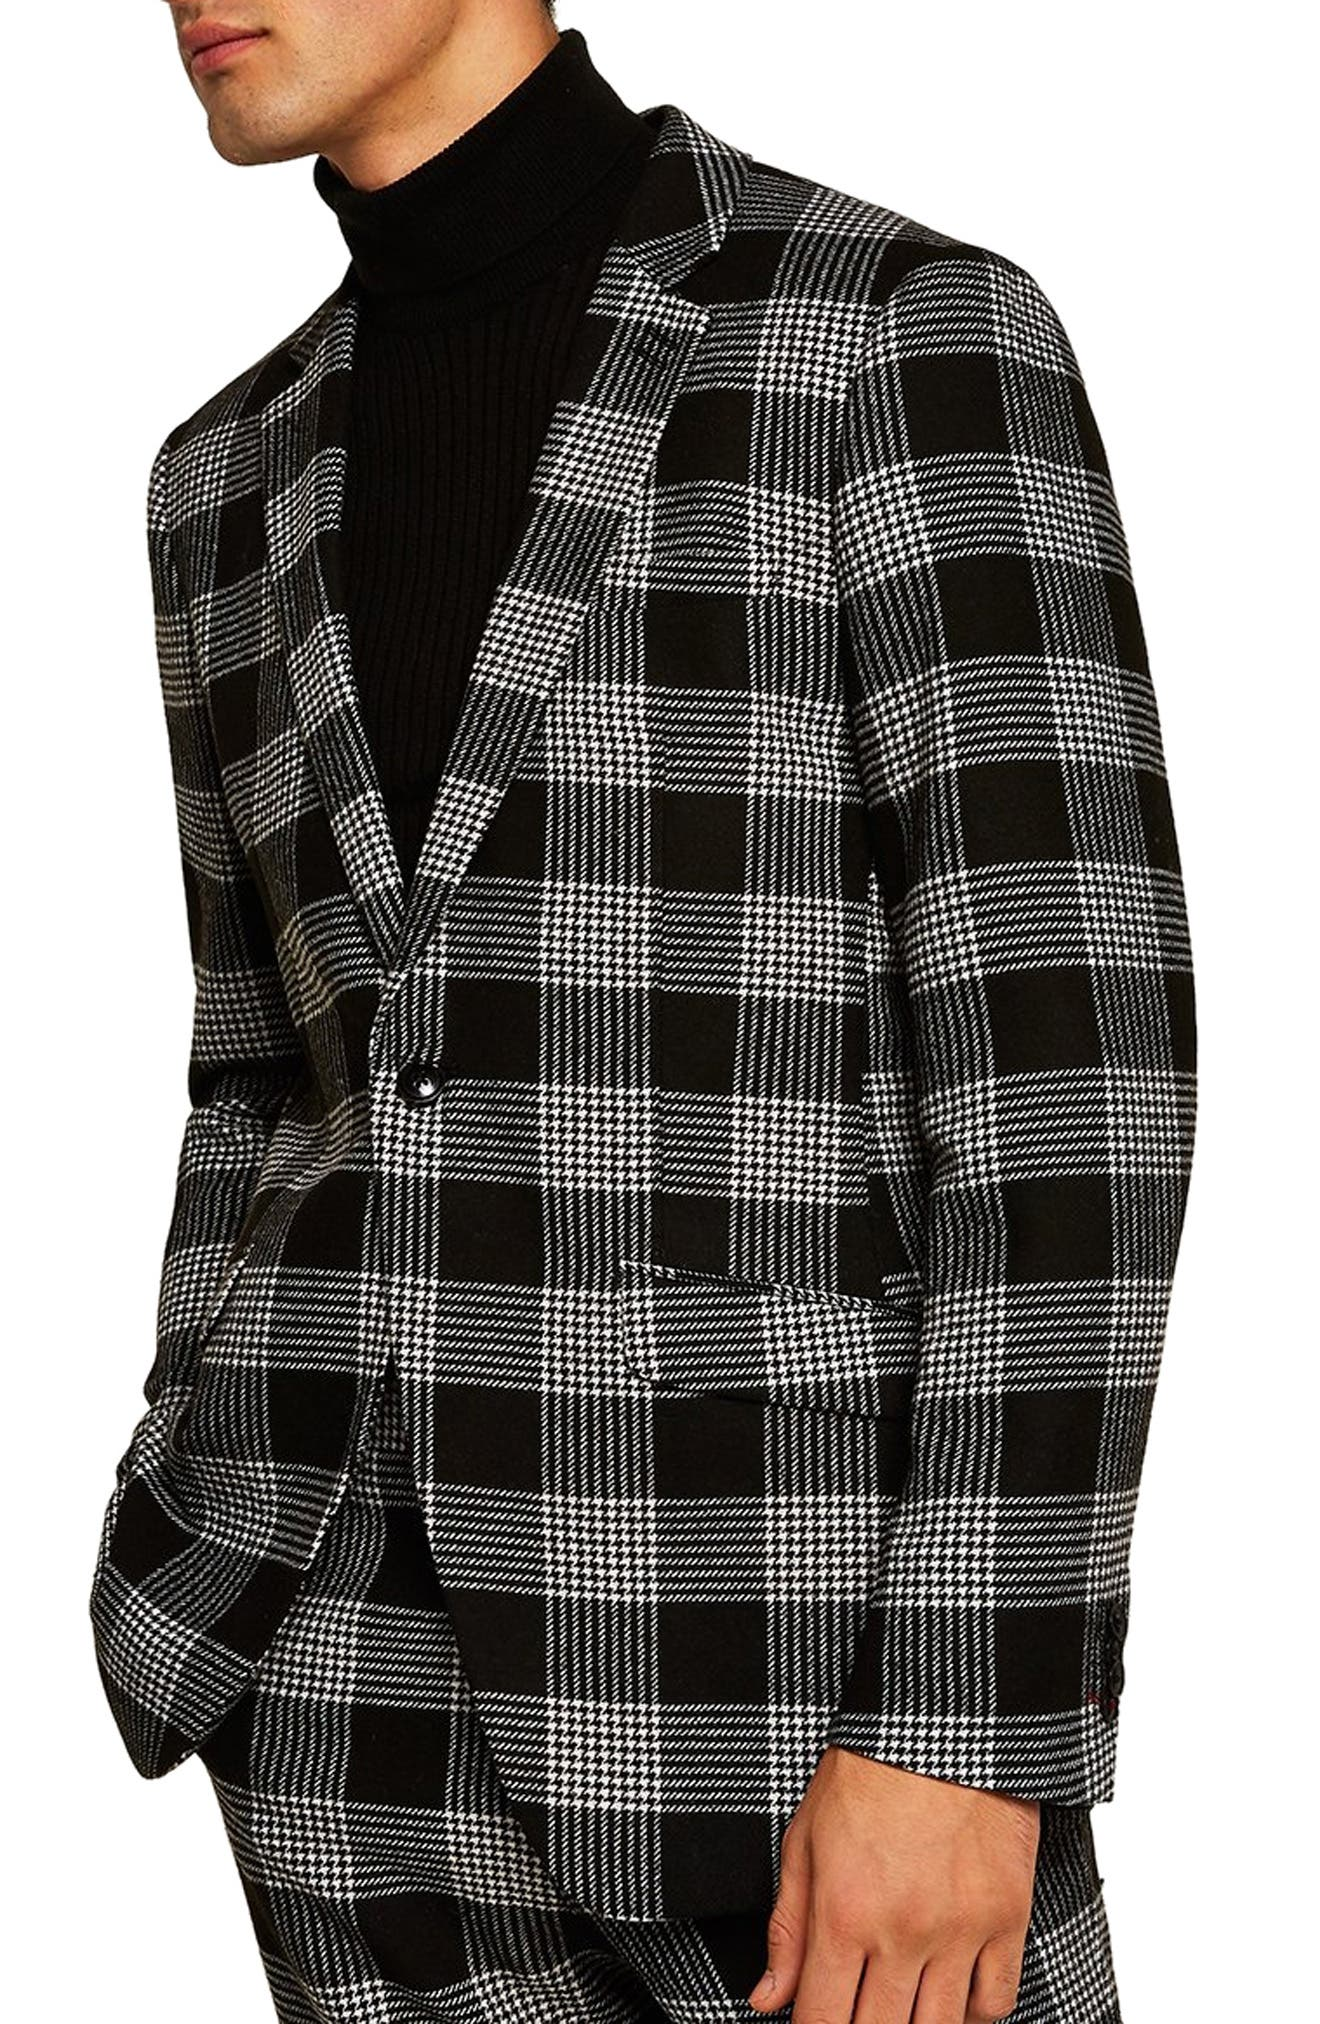 Leigh Classic Check Slim Fit Blazer,                             Main thumbnail 1, color,                             BLACK MULTI